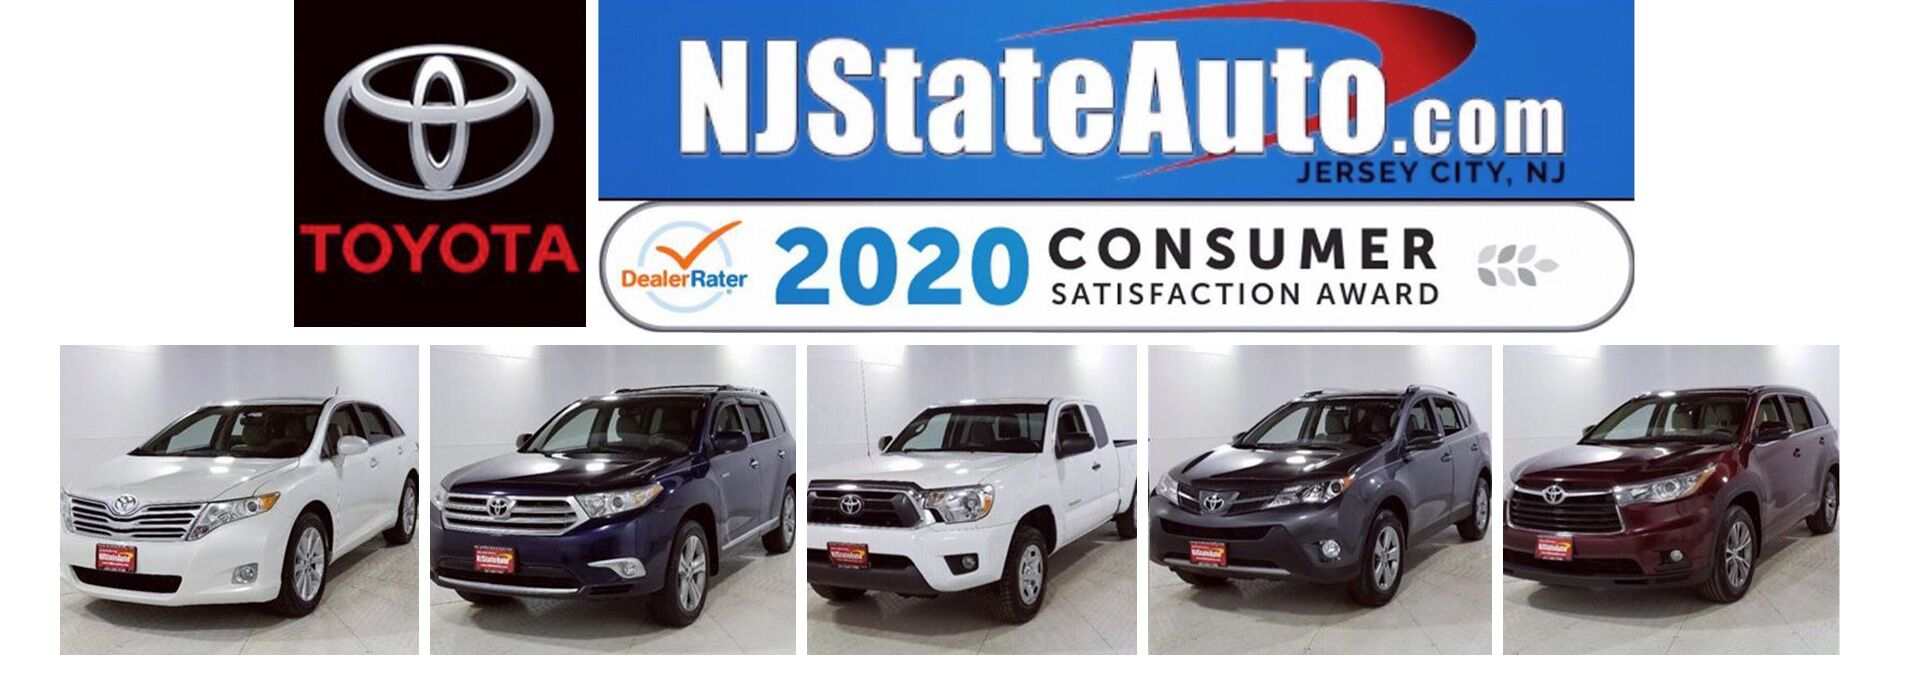 Cars For Sale Near Me Nj State Auto Used Car Dealer In New Jersey